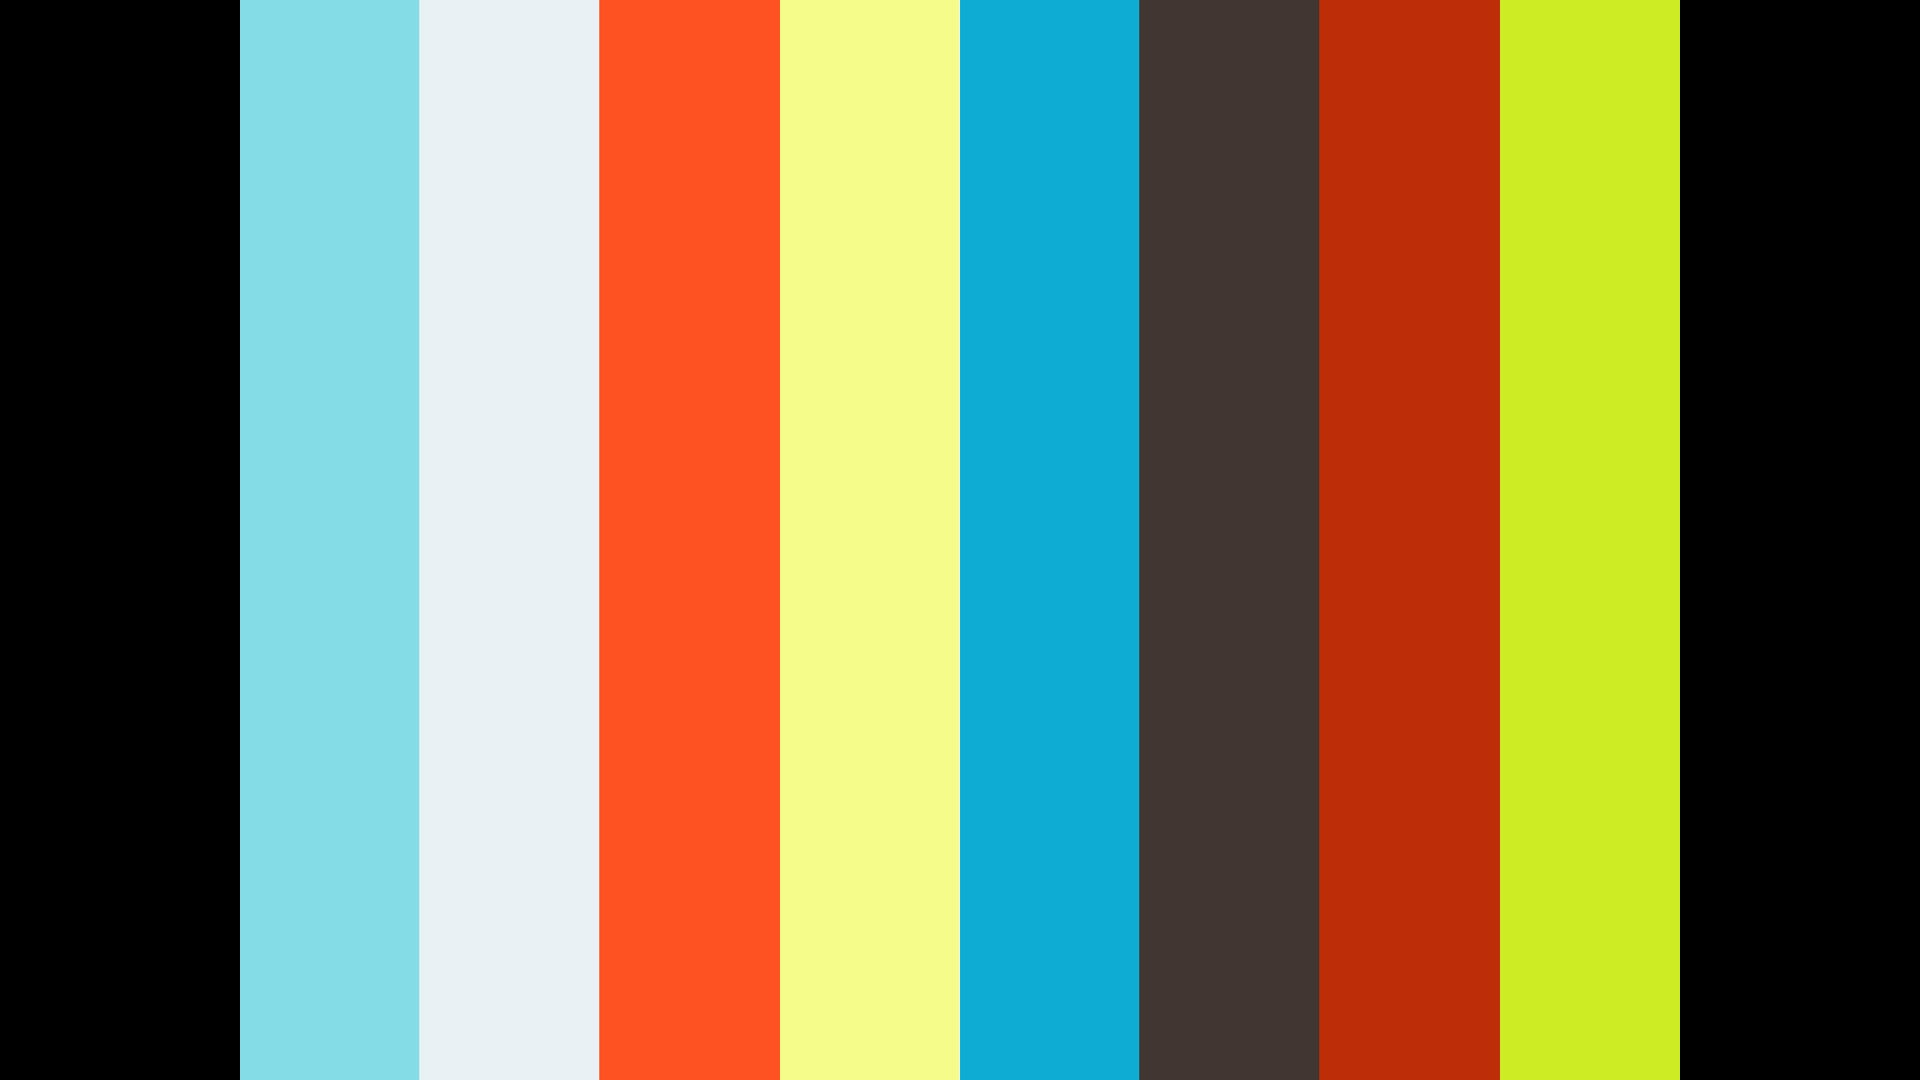 Run to God - Jonah's story